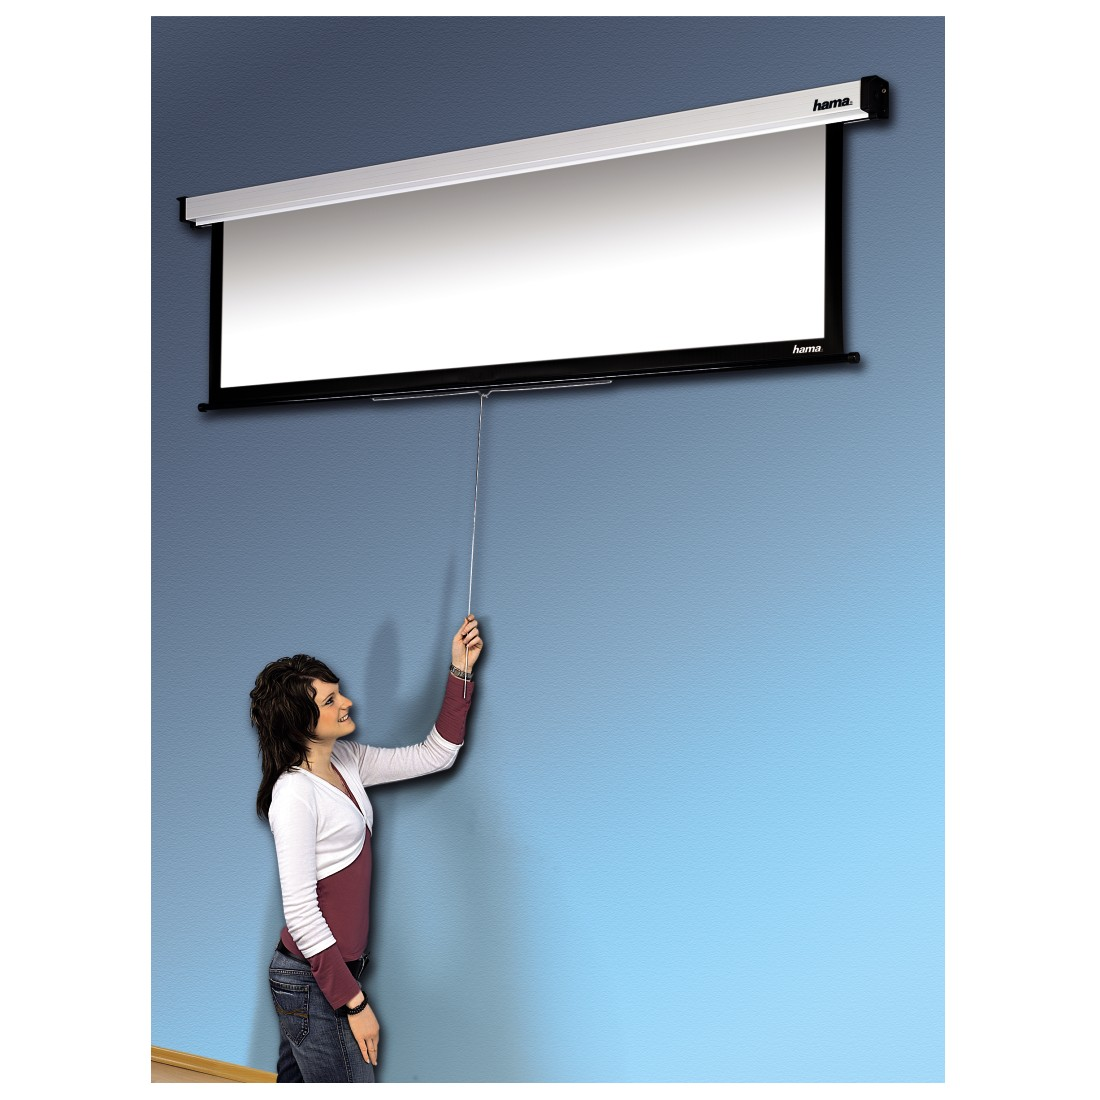 awx High-Res Appliance - Hama, Roller Projection Screen, 180 x 160 cm, 4:3